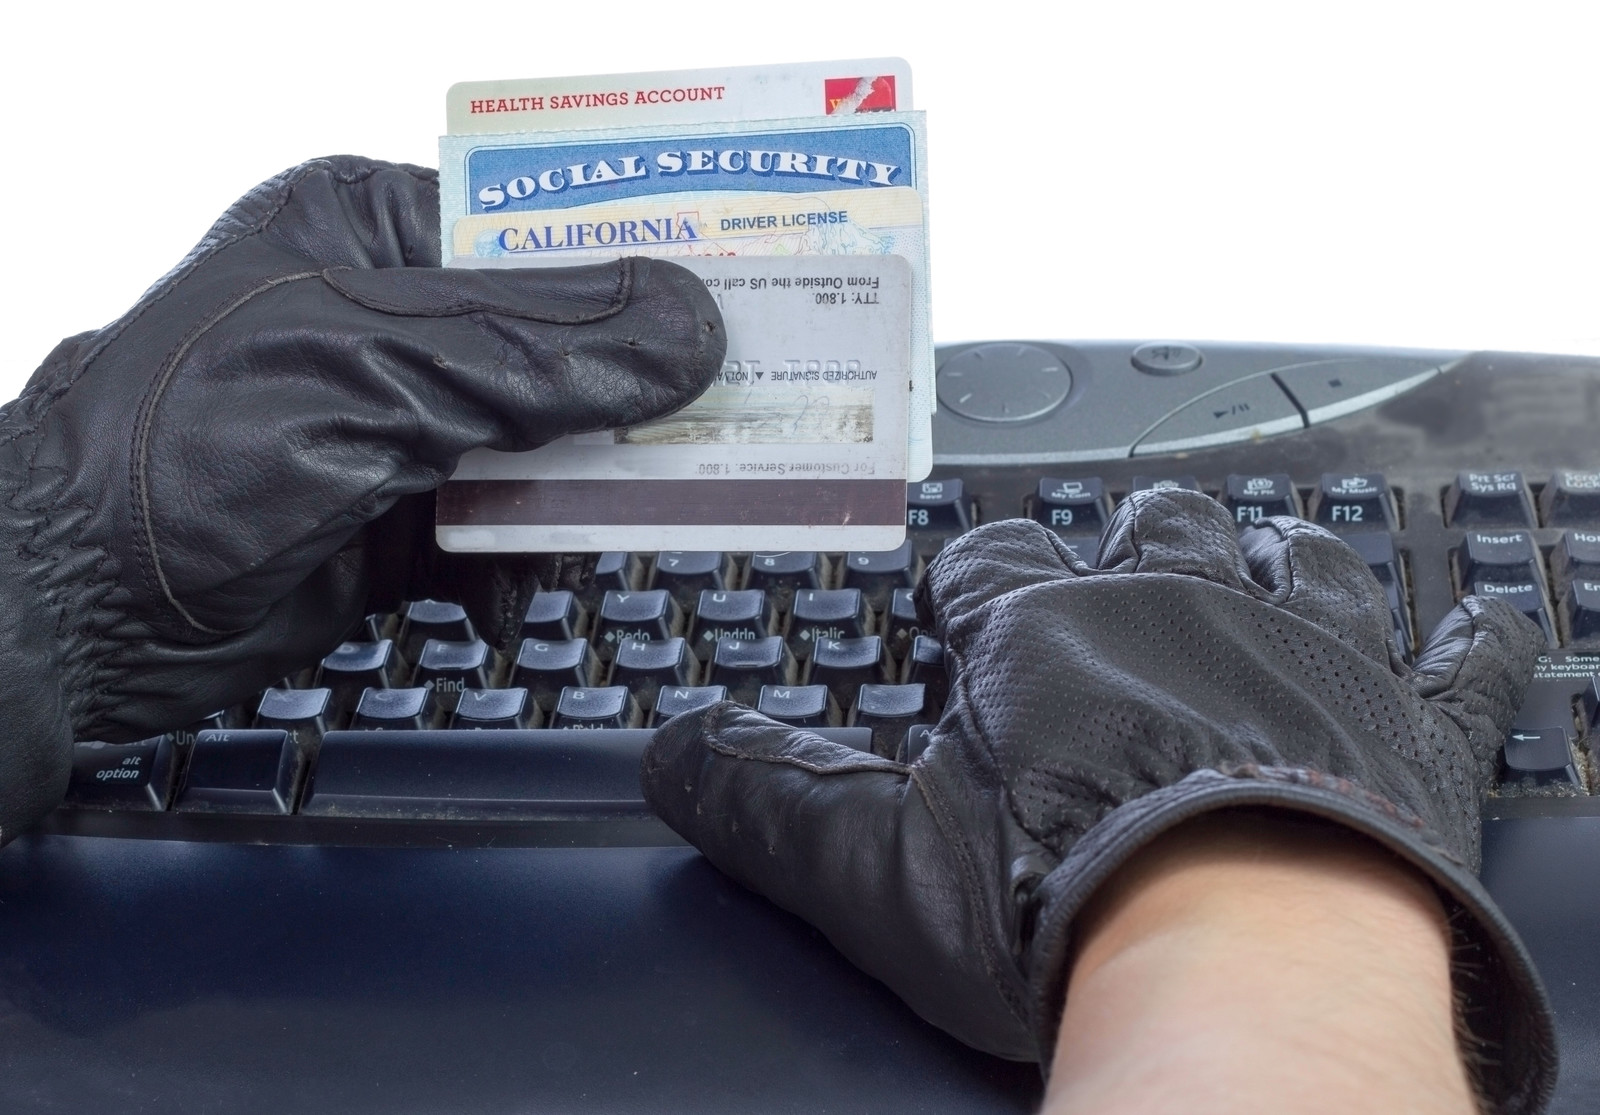 gloved hands typing on a computer holding stolen credit cards and social security card - photo represents identity theft